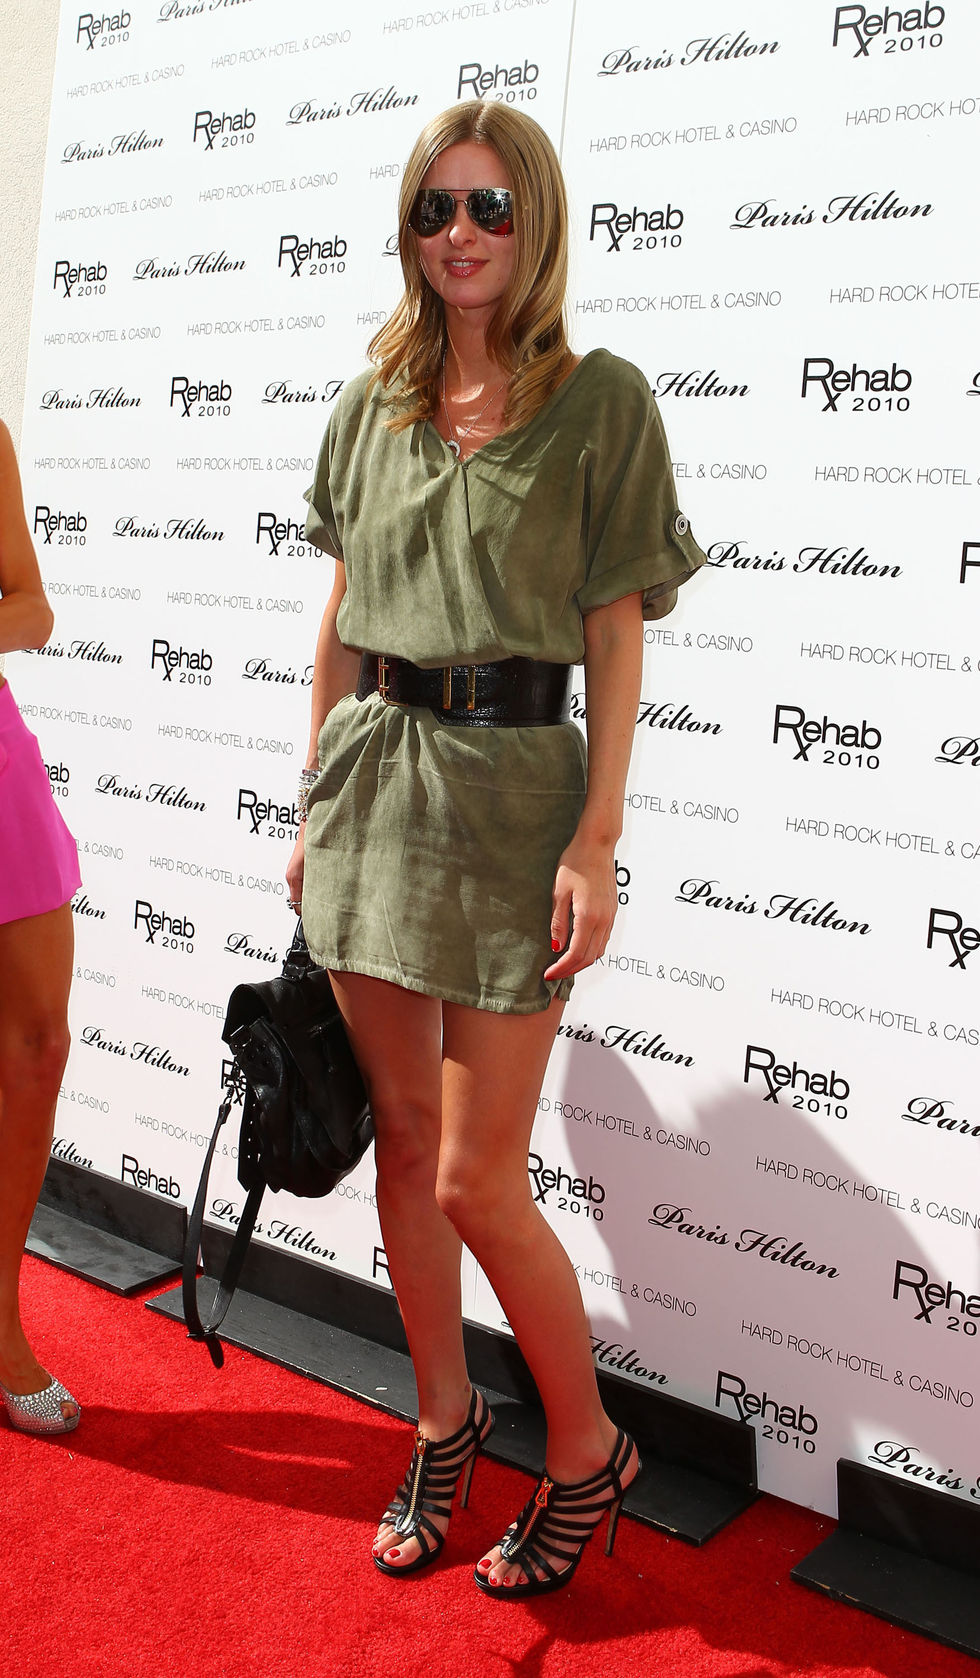 Nicky Hilton 2010 : nicky-hilton-leggy-candids-at-the-ultimate-daytime-pool-party-in-las-vegas-03